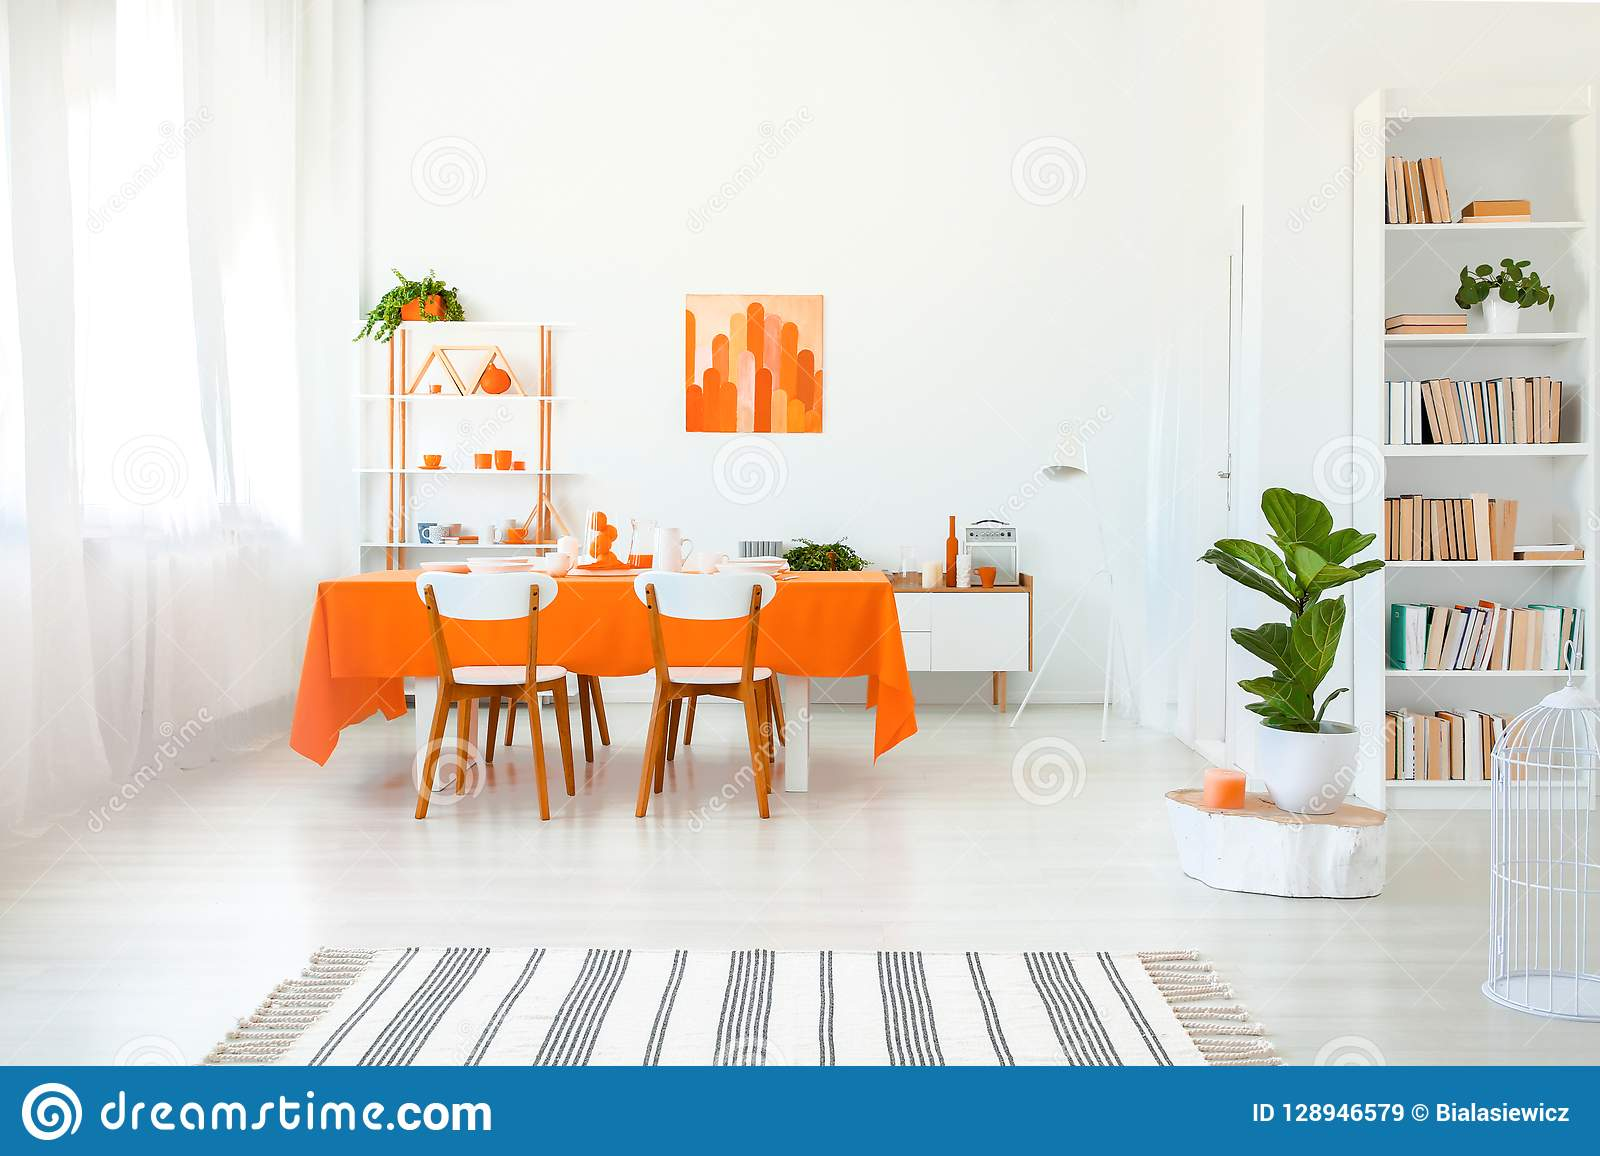 Dining room in vivid color. Orange tablecloth on table with white chairs